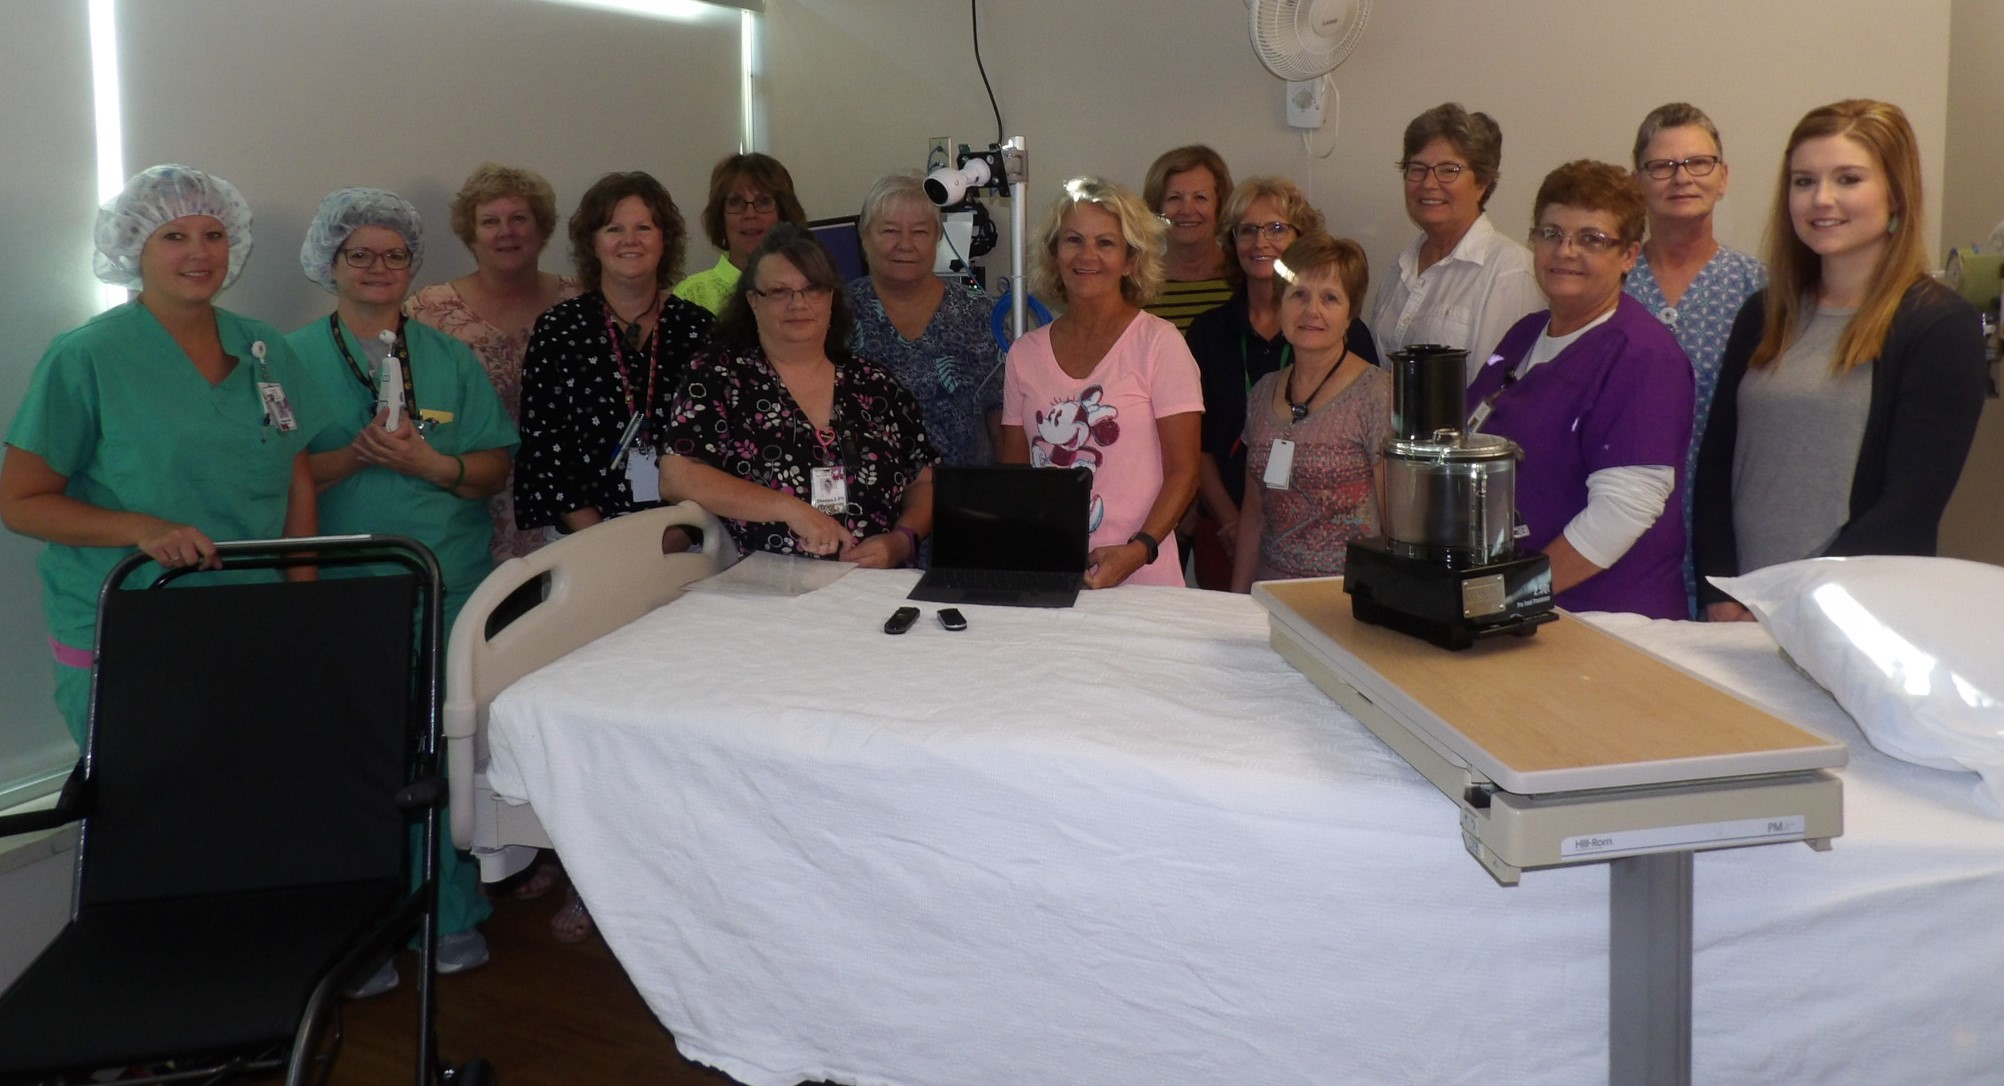 Loring Auxiliary Donates $7,900 to Loring Hospital